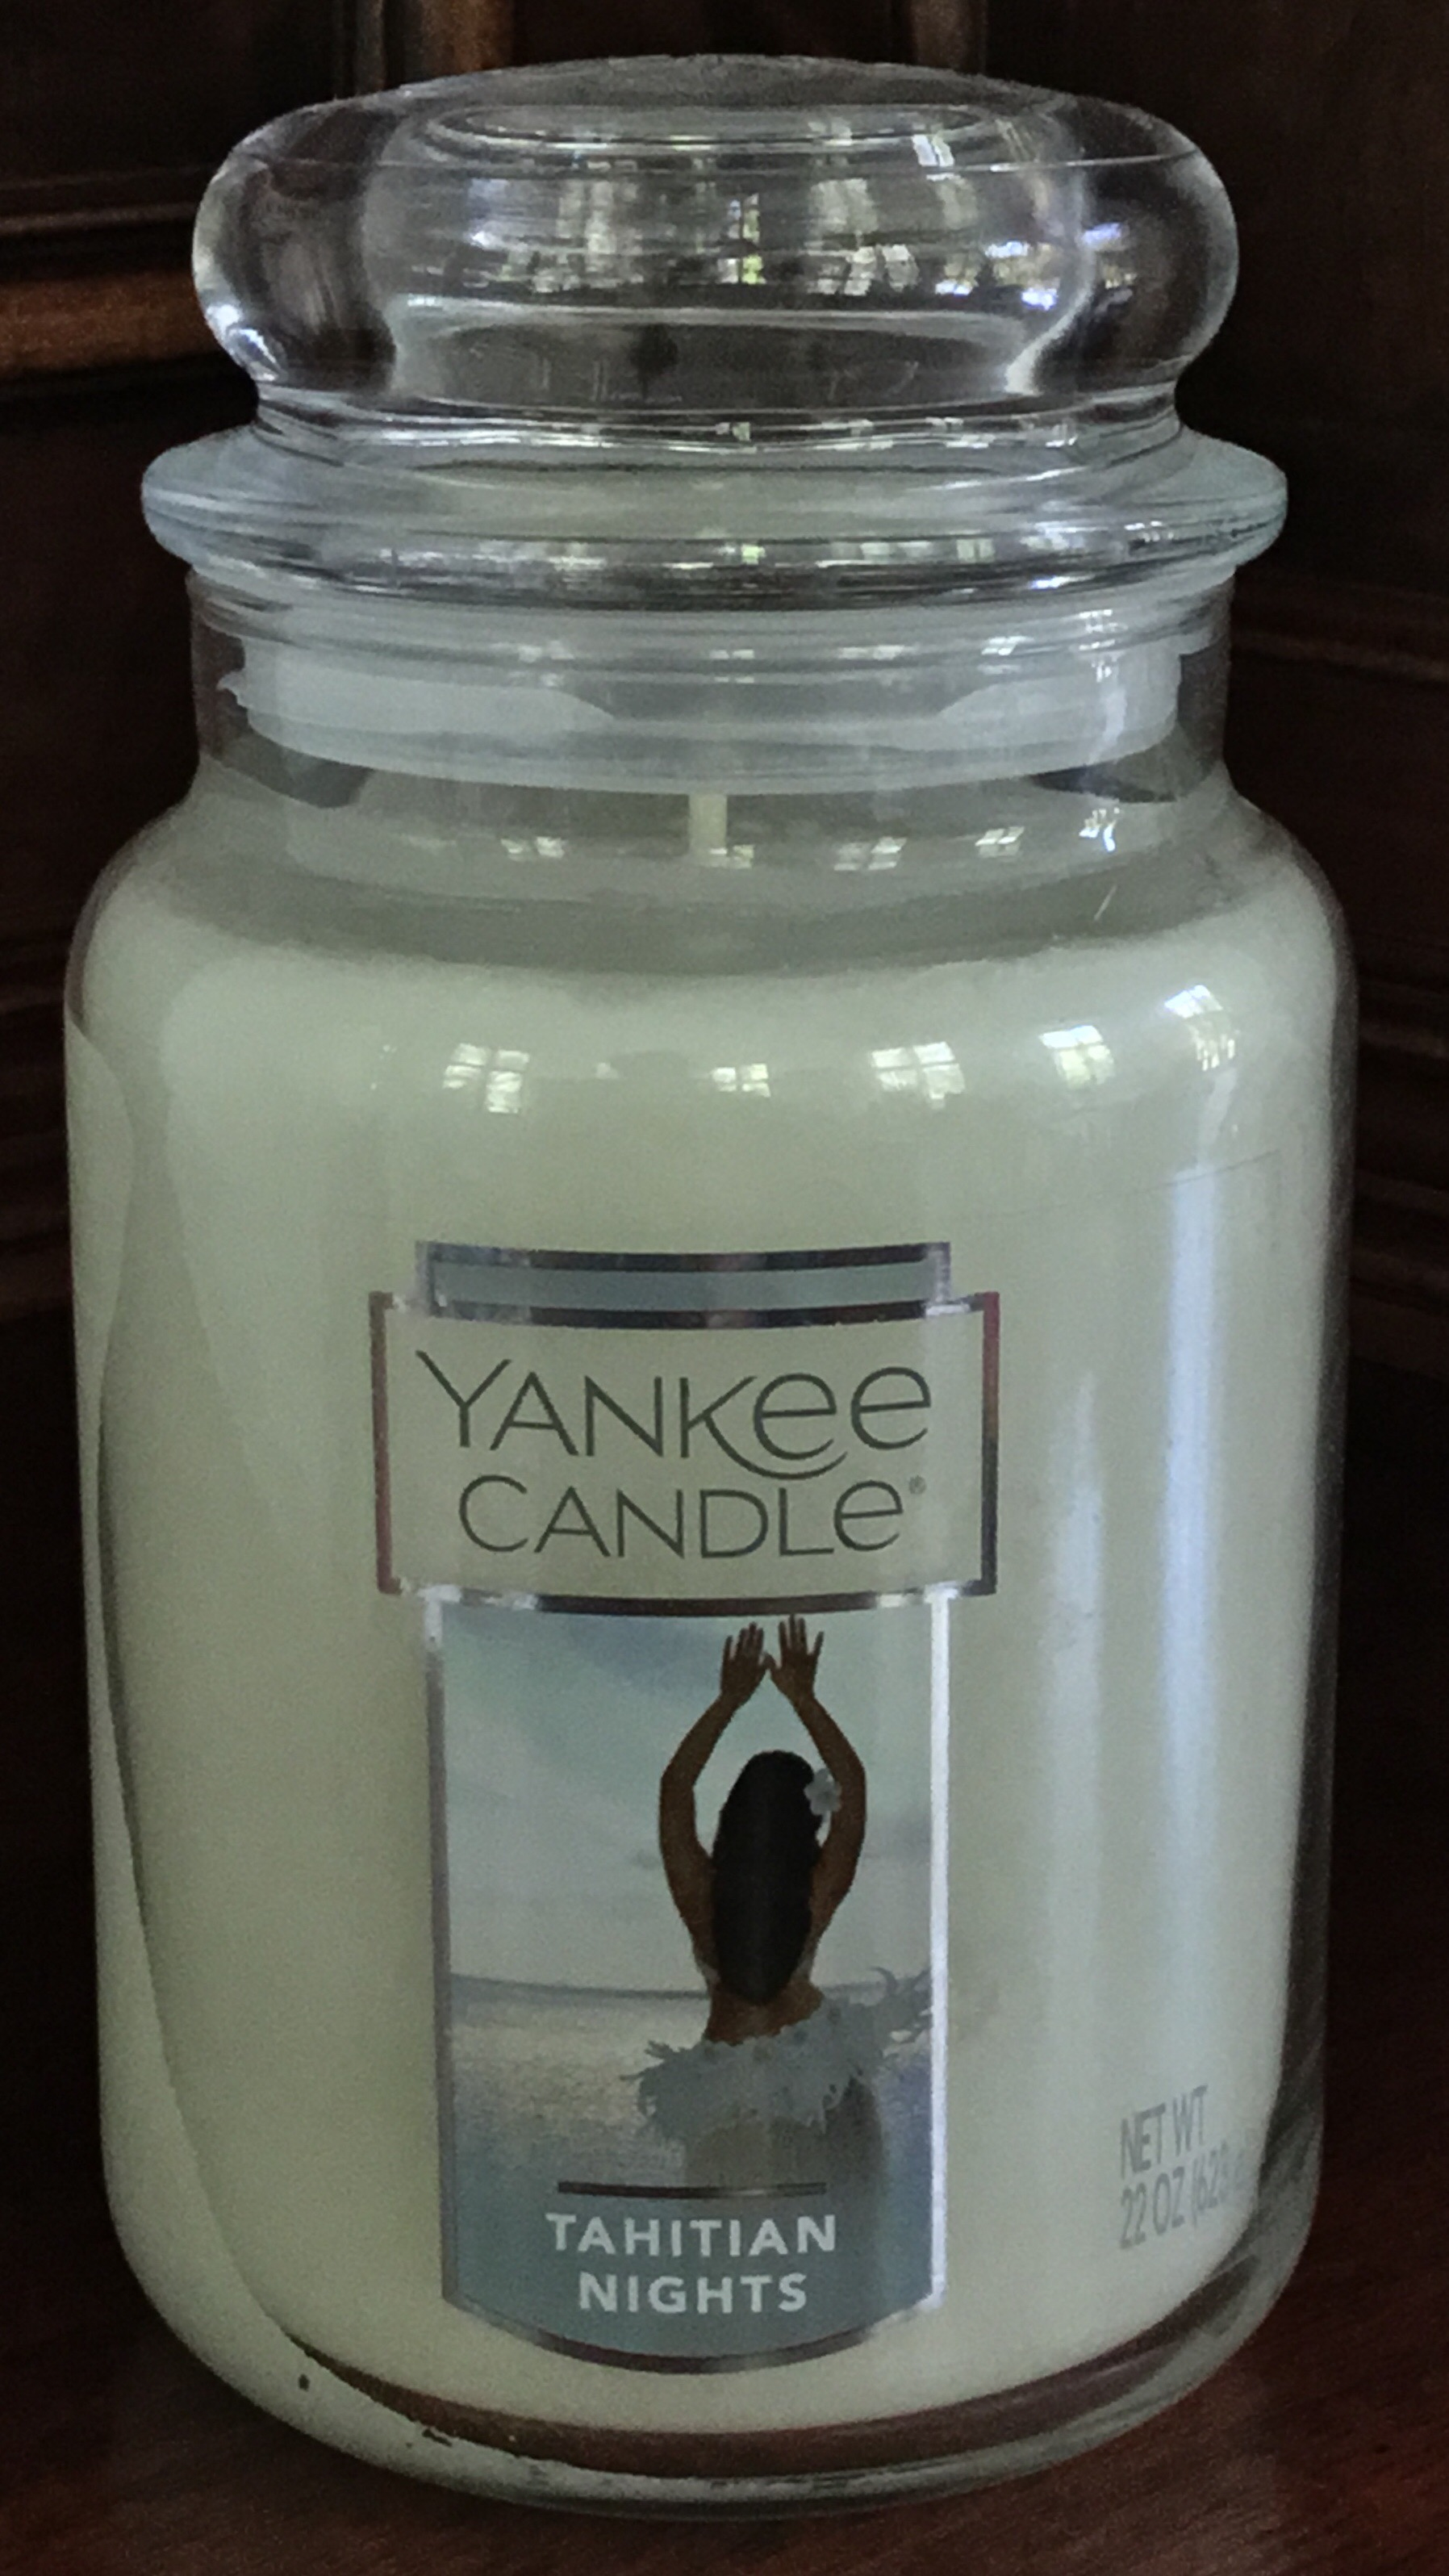 Yankee Candle, Tahitian Nights Candle